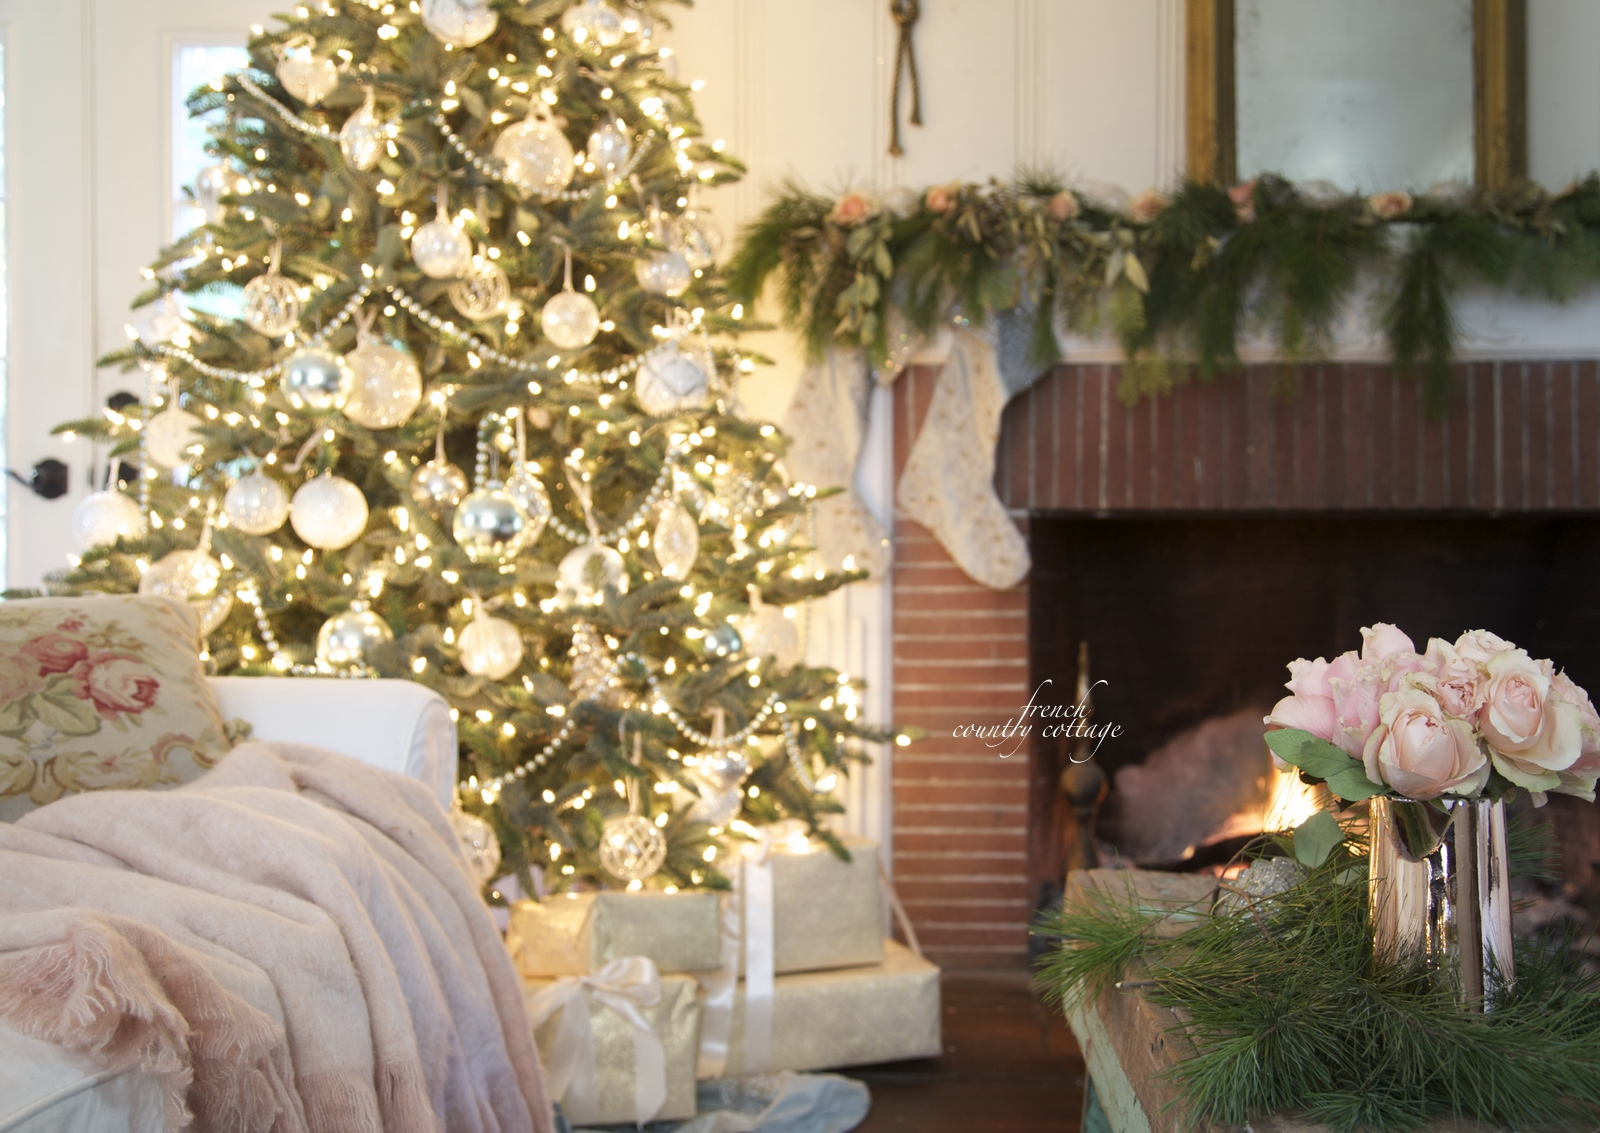 French Country Cottage Christmas Home Tour   FRENCH COUNTRY COTTAGE French Country Cottage Christmas Home Holiday Decorating